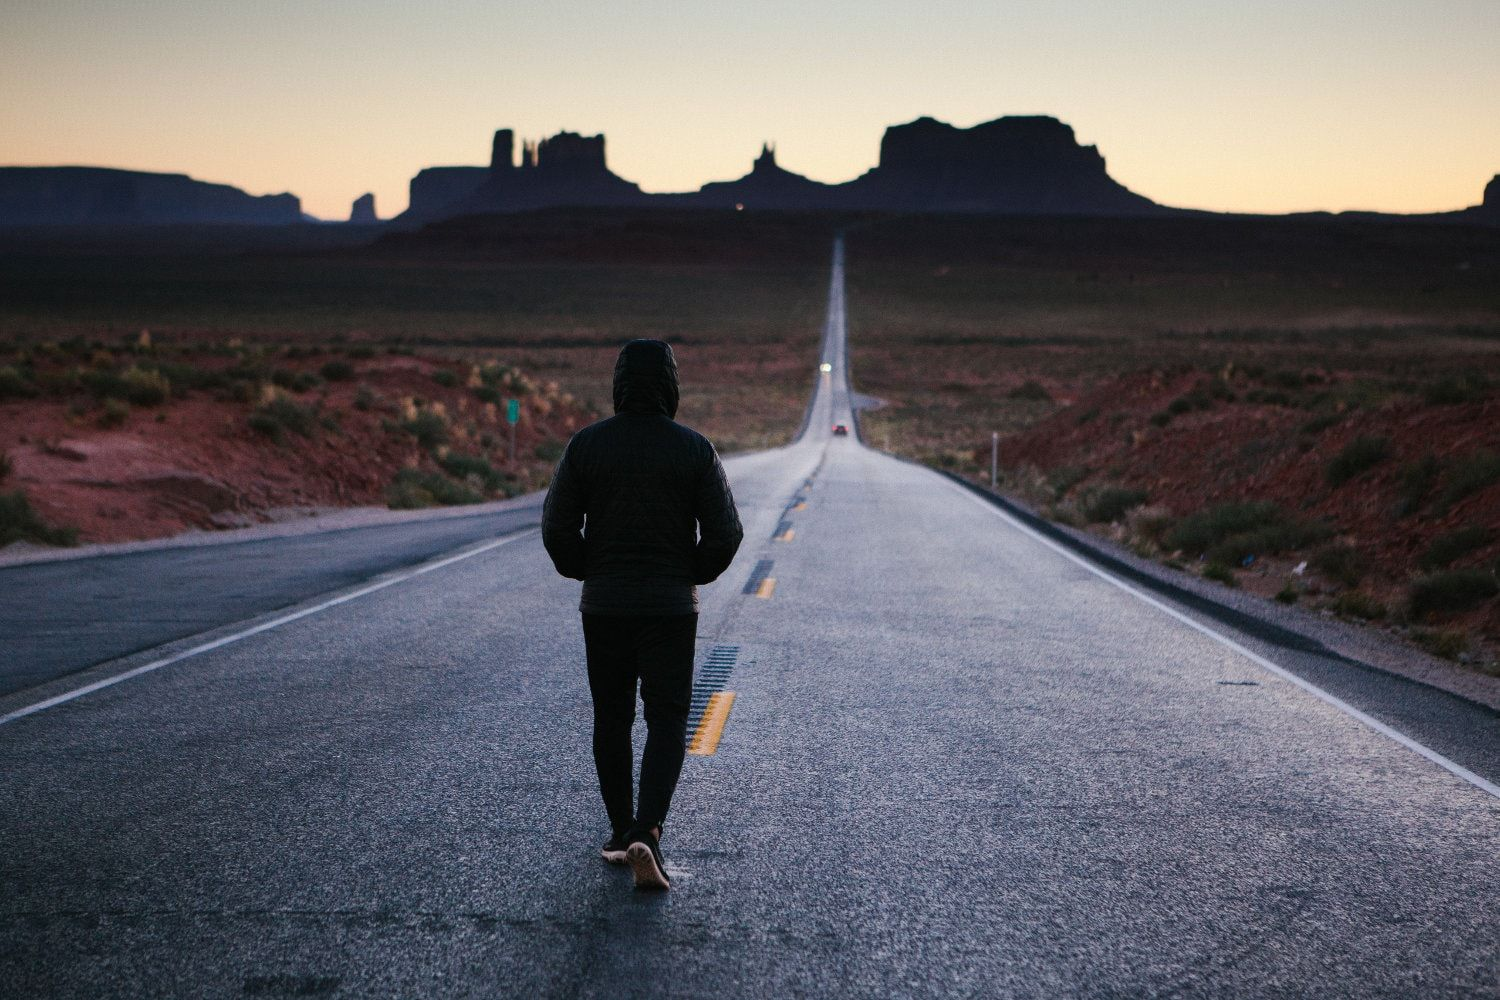 The Simplest Path To Reaching Your Goals